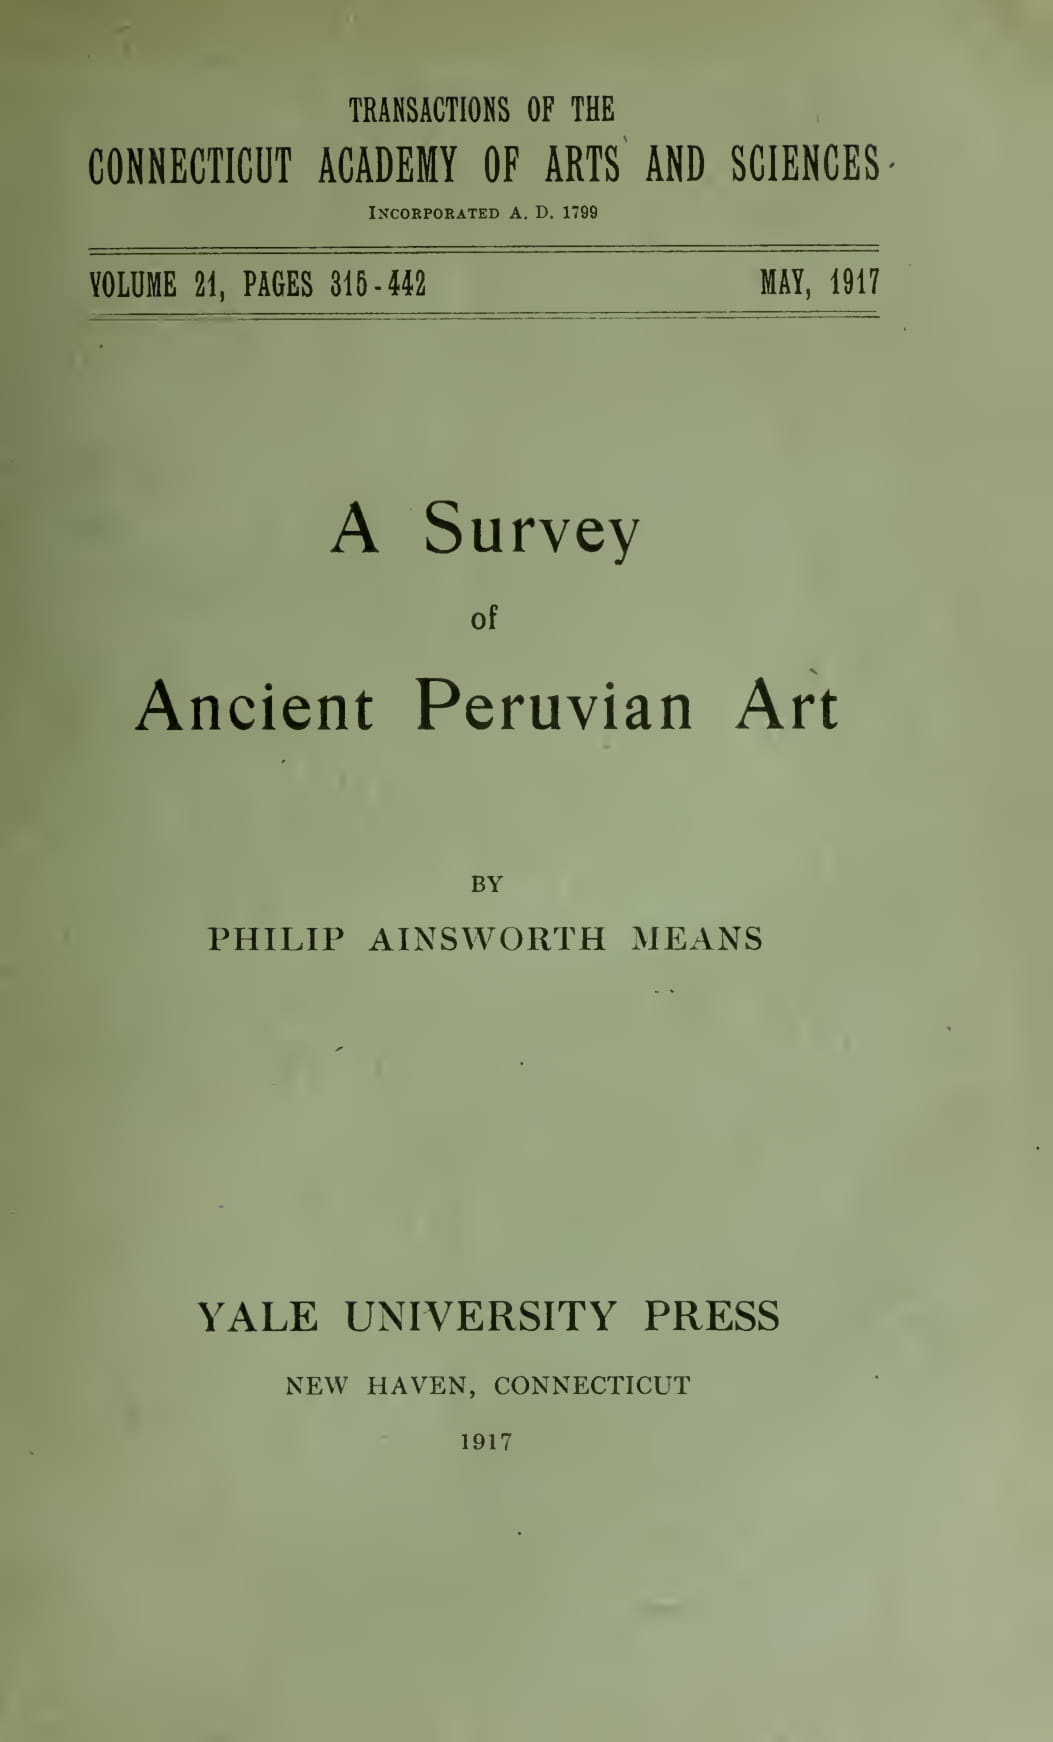 Getty Research Institute - A Survey of Ancient Peruvian Art